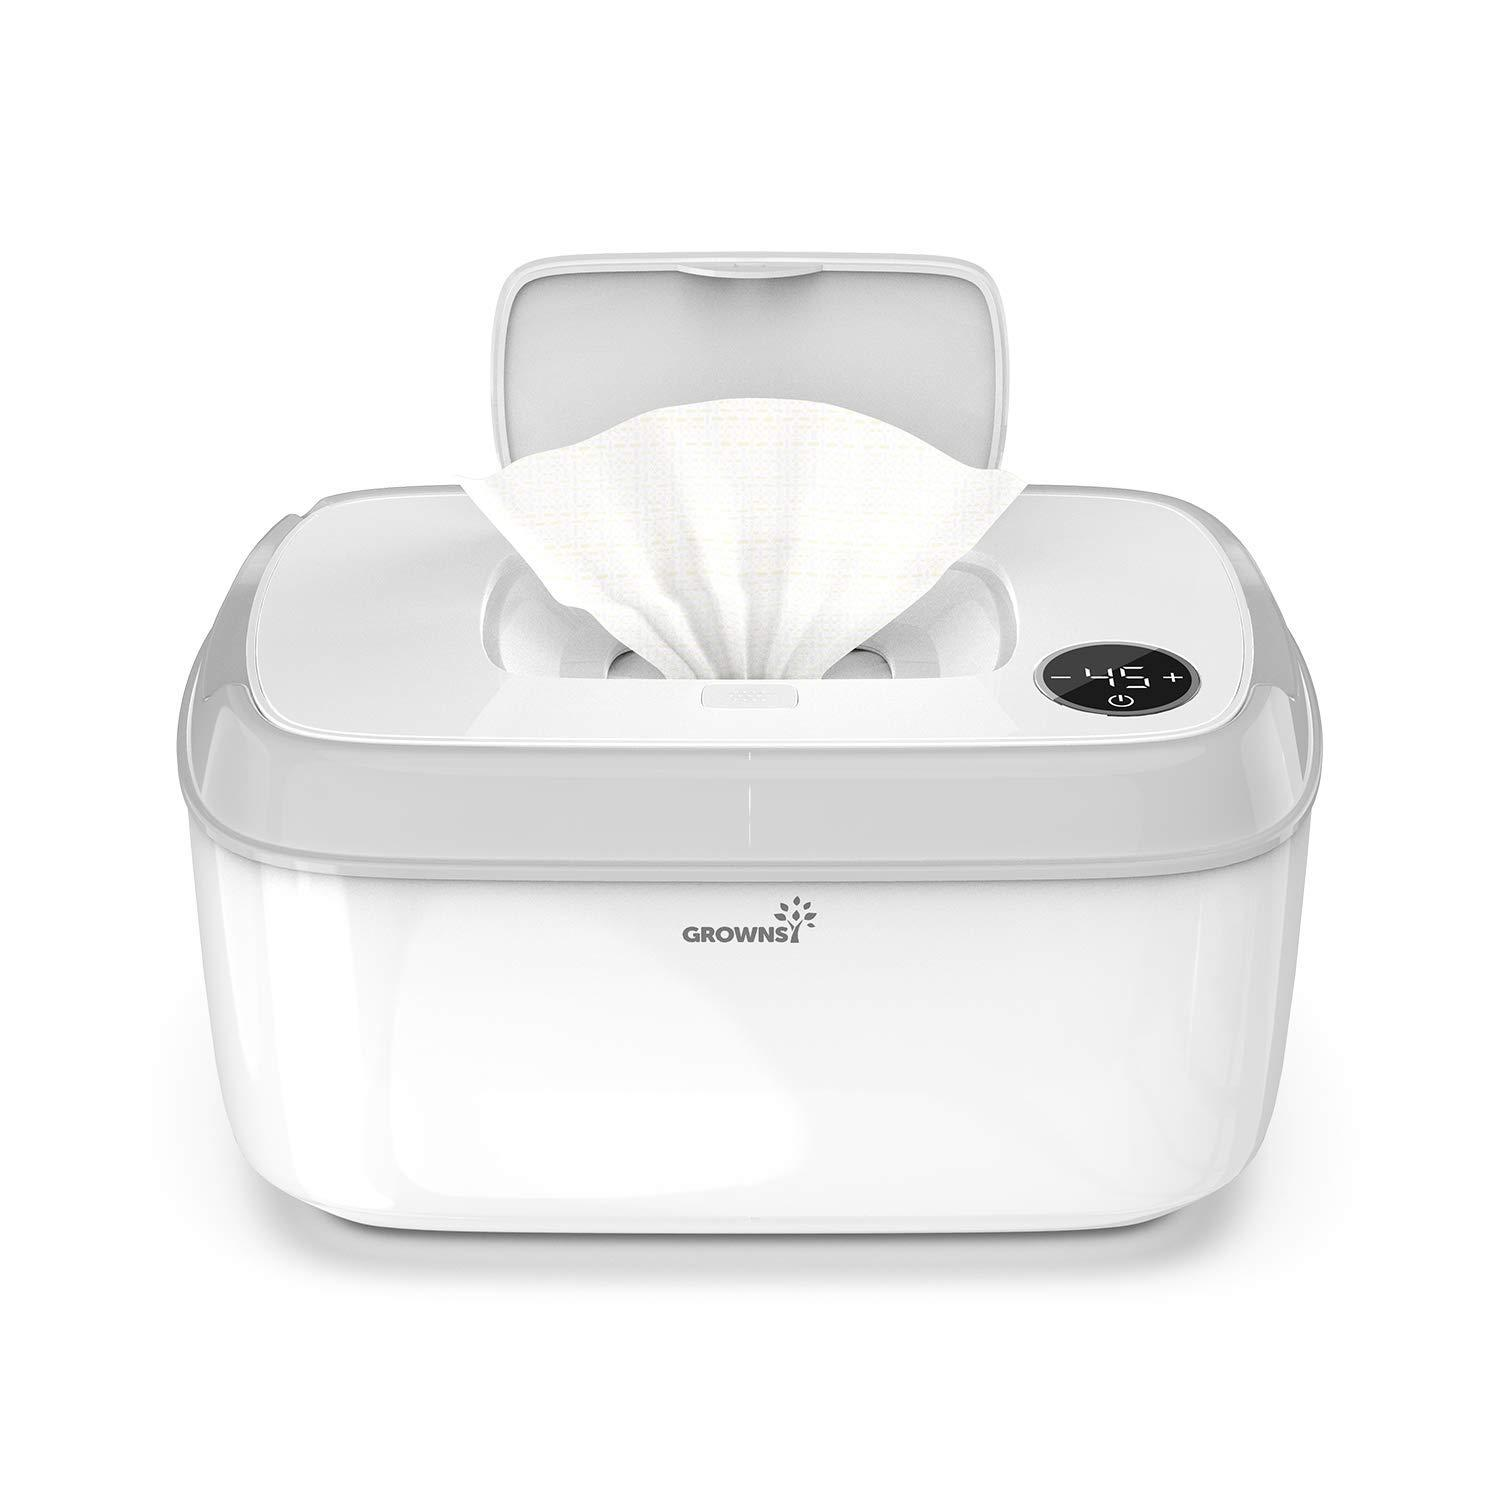 Amazon.com : Wipe Warmer, Baby Diaper Wipes Dispenser Holder BPA-Free with  Precise Temperature Control, Evenly and Quickly Top Heating, Large  Capacity, Silent for Baby, Perfect Warmth : Baby